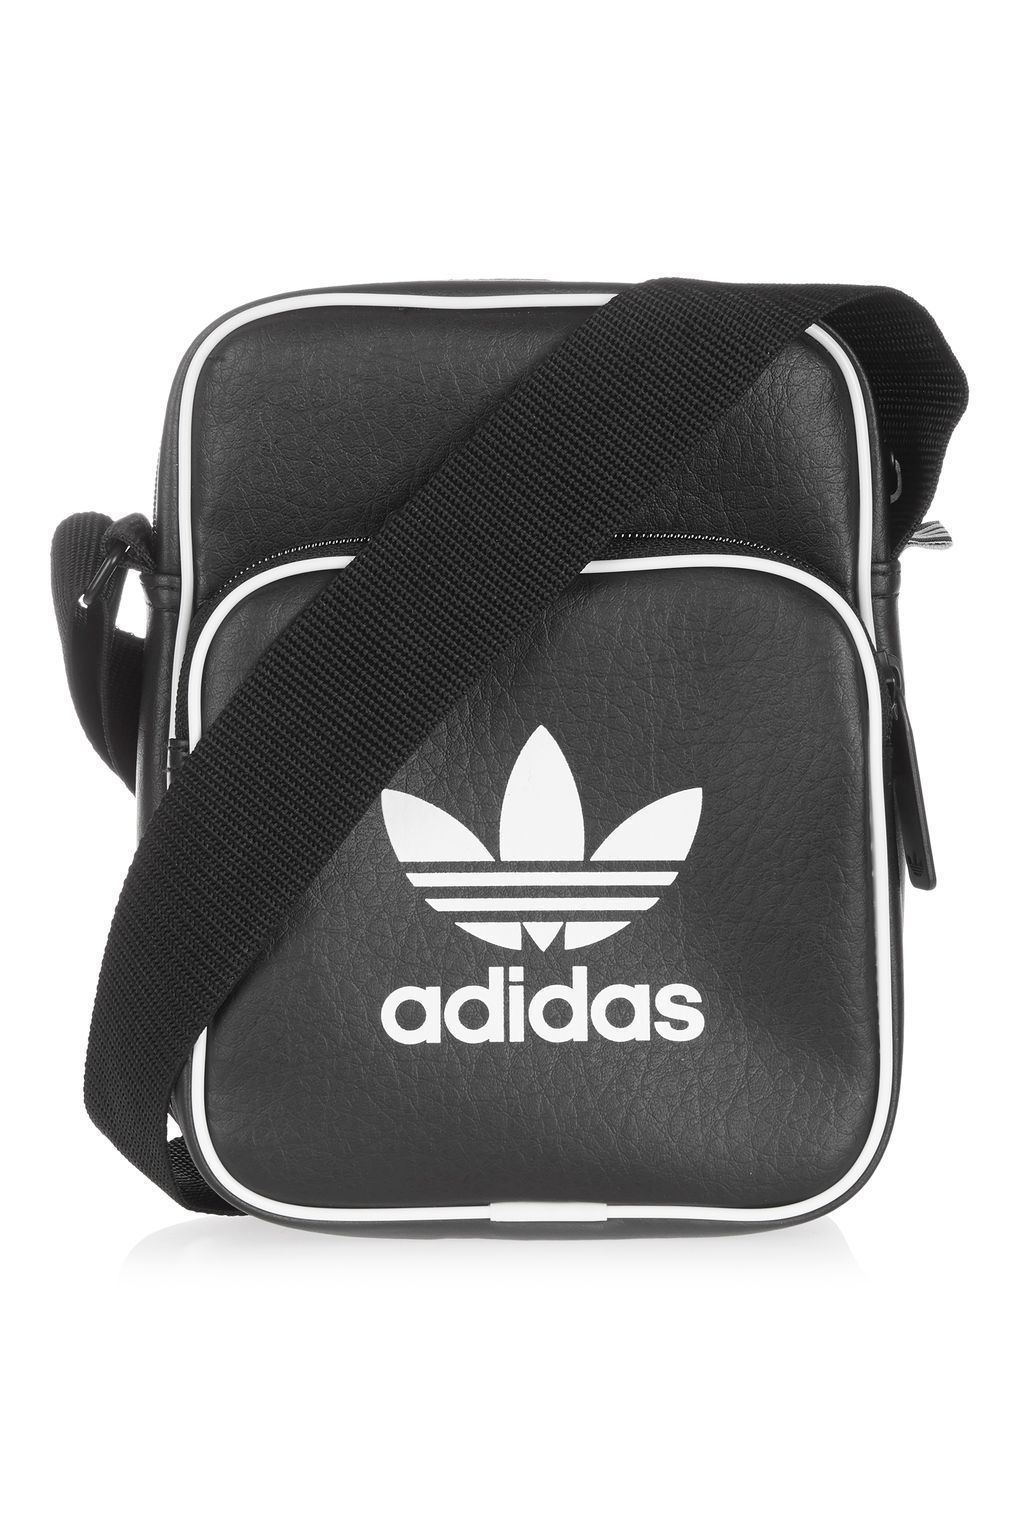 6a8d96ca8 Adidas Originals Side Bag Mini Vintage Black Faux Leather Flight Bag  Shoulder #adidas #MessengerShoulderBag | Bags em 2019 | Black adidas, Bags  e Vintage ...